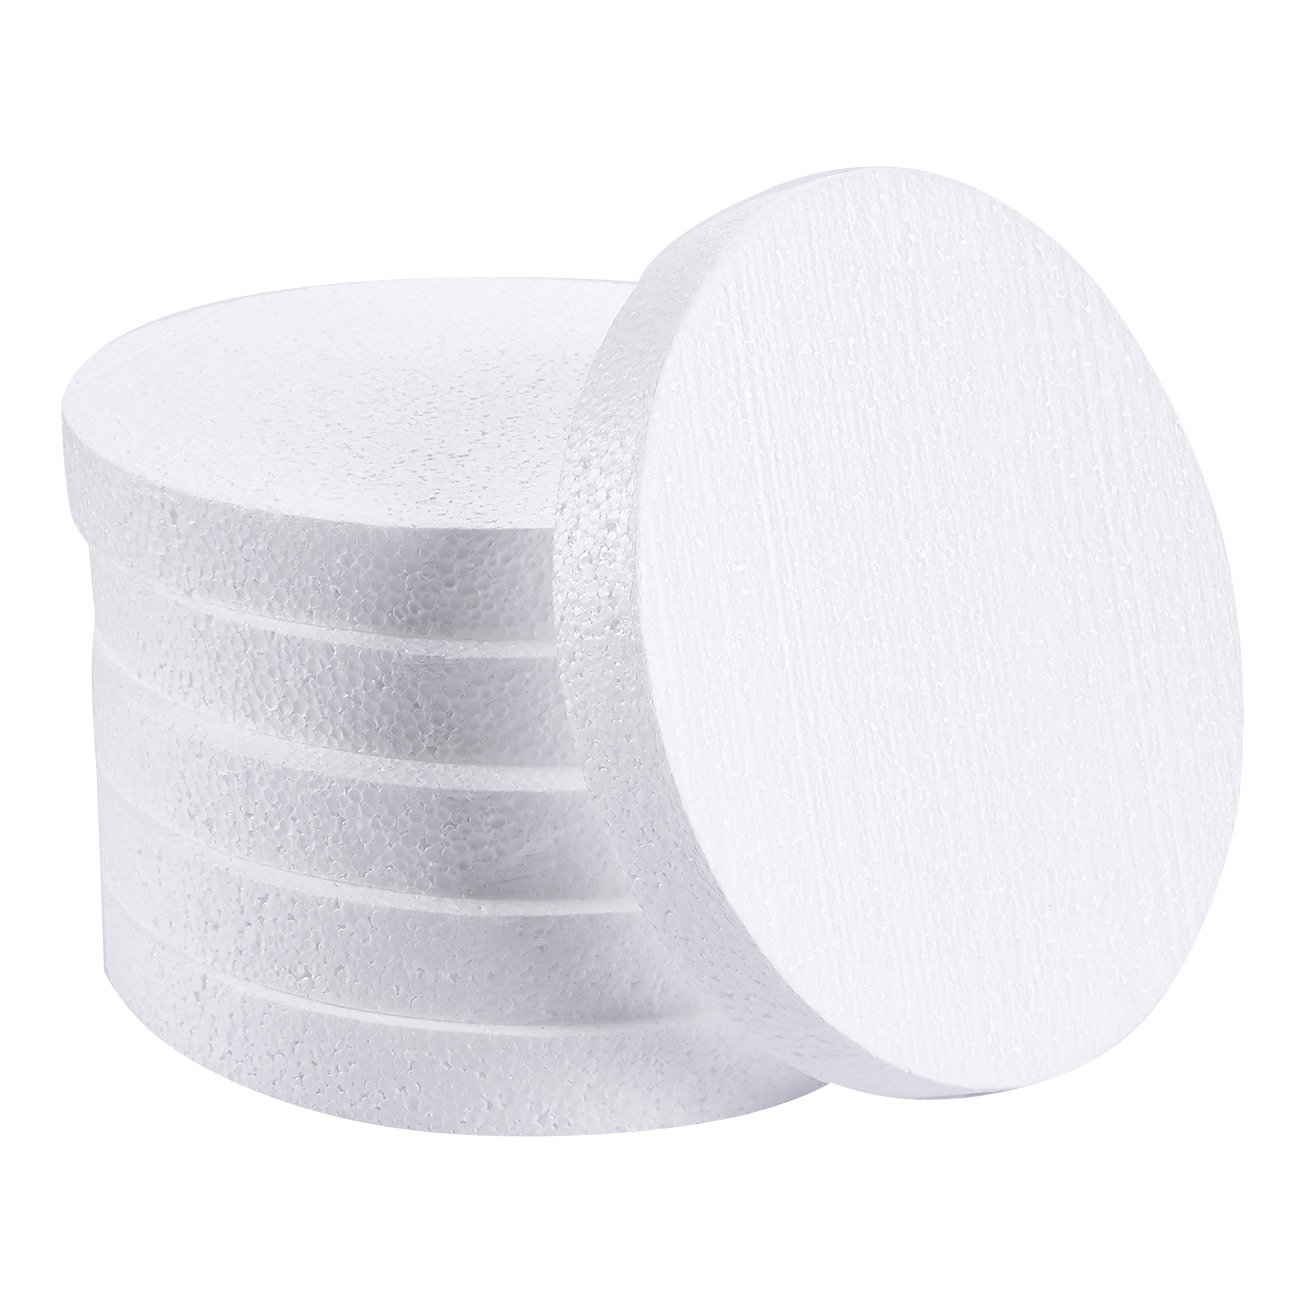 Craft Foam Circle - 24-Pack Polystyrene Foam Disc Foam Round for Sculpture, Modeling, DIY Arts and Crafts - White, 3 x 3 x 1 Inches Juvale